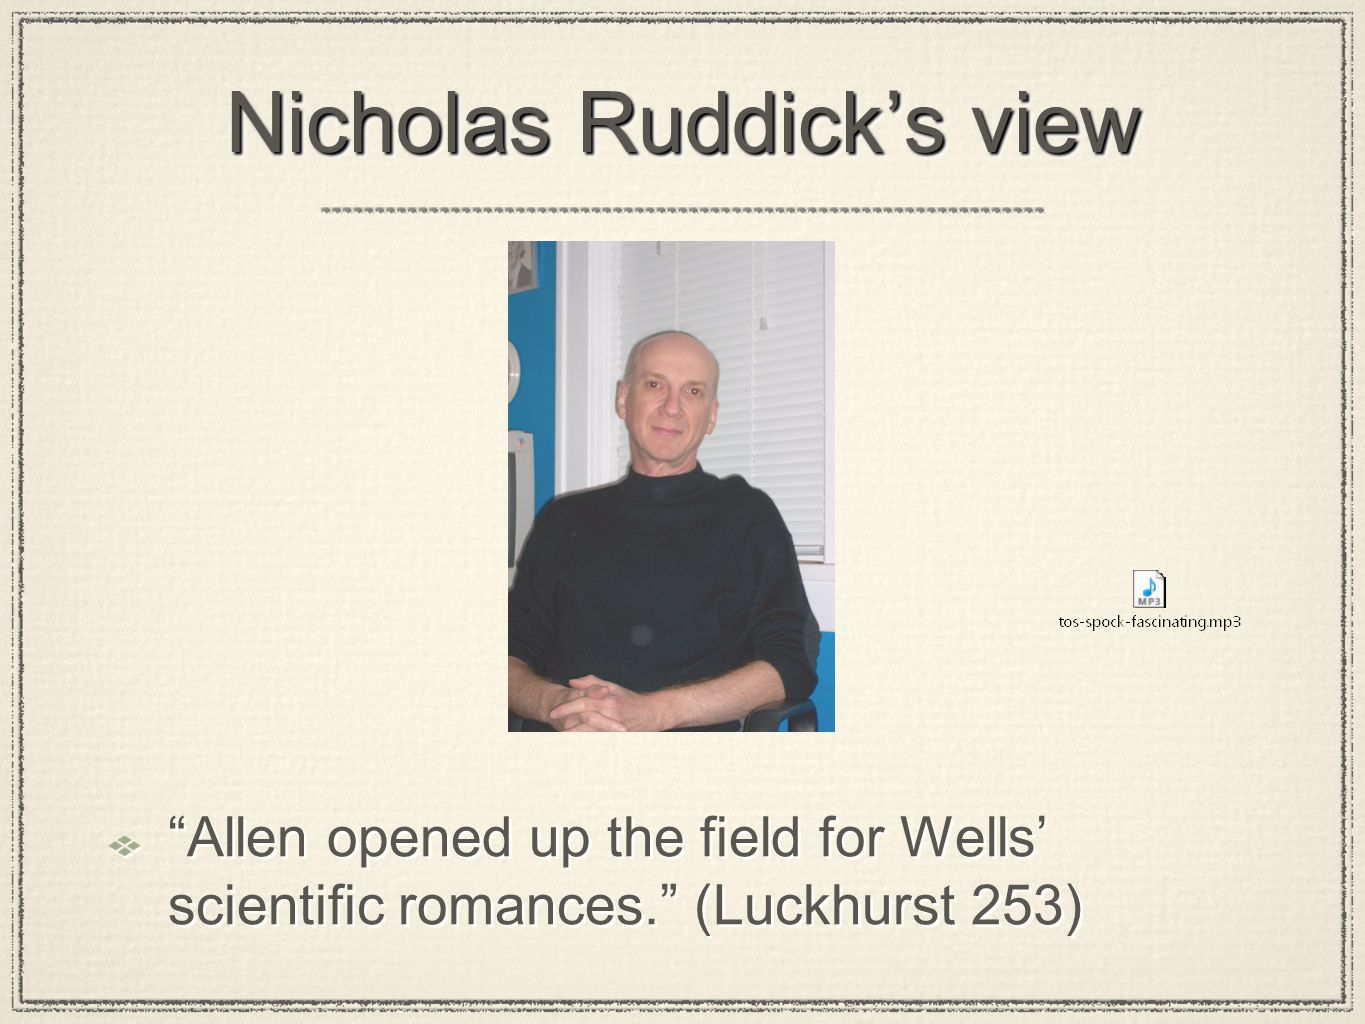 Nicholas Ruddick's view Allen opened up the field for Wells' scientific romances. (Luckhurst 253)